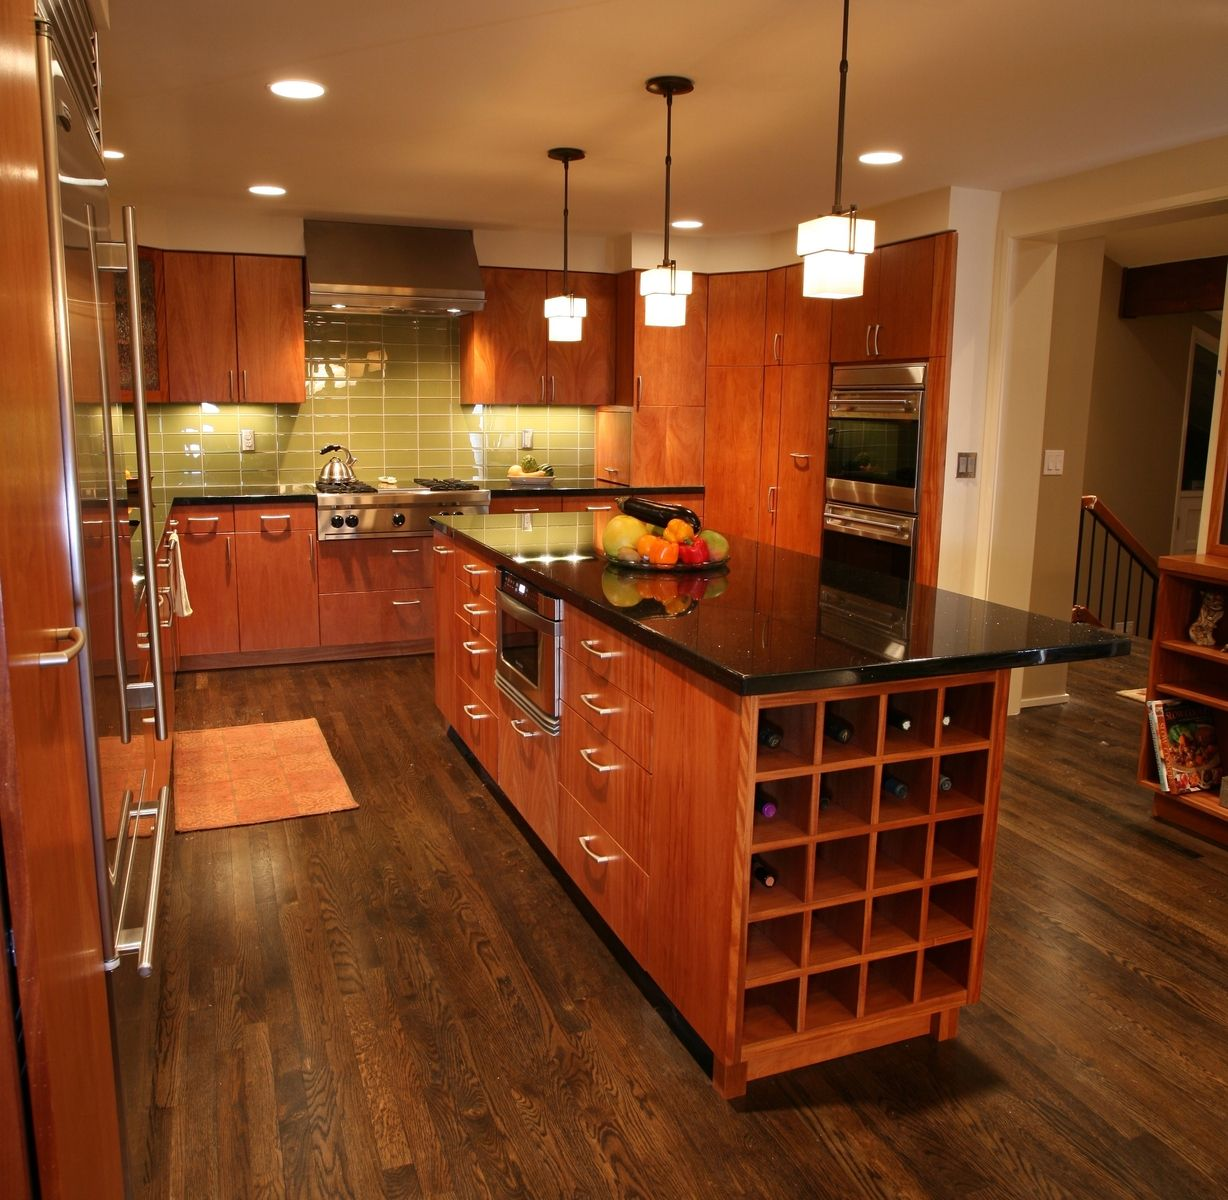 Kitchen Ideas With Dark Wood: Contemporary Mahogany Kitchen And Island. So I Can See